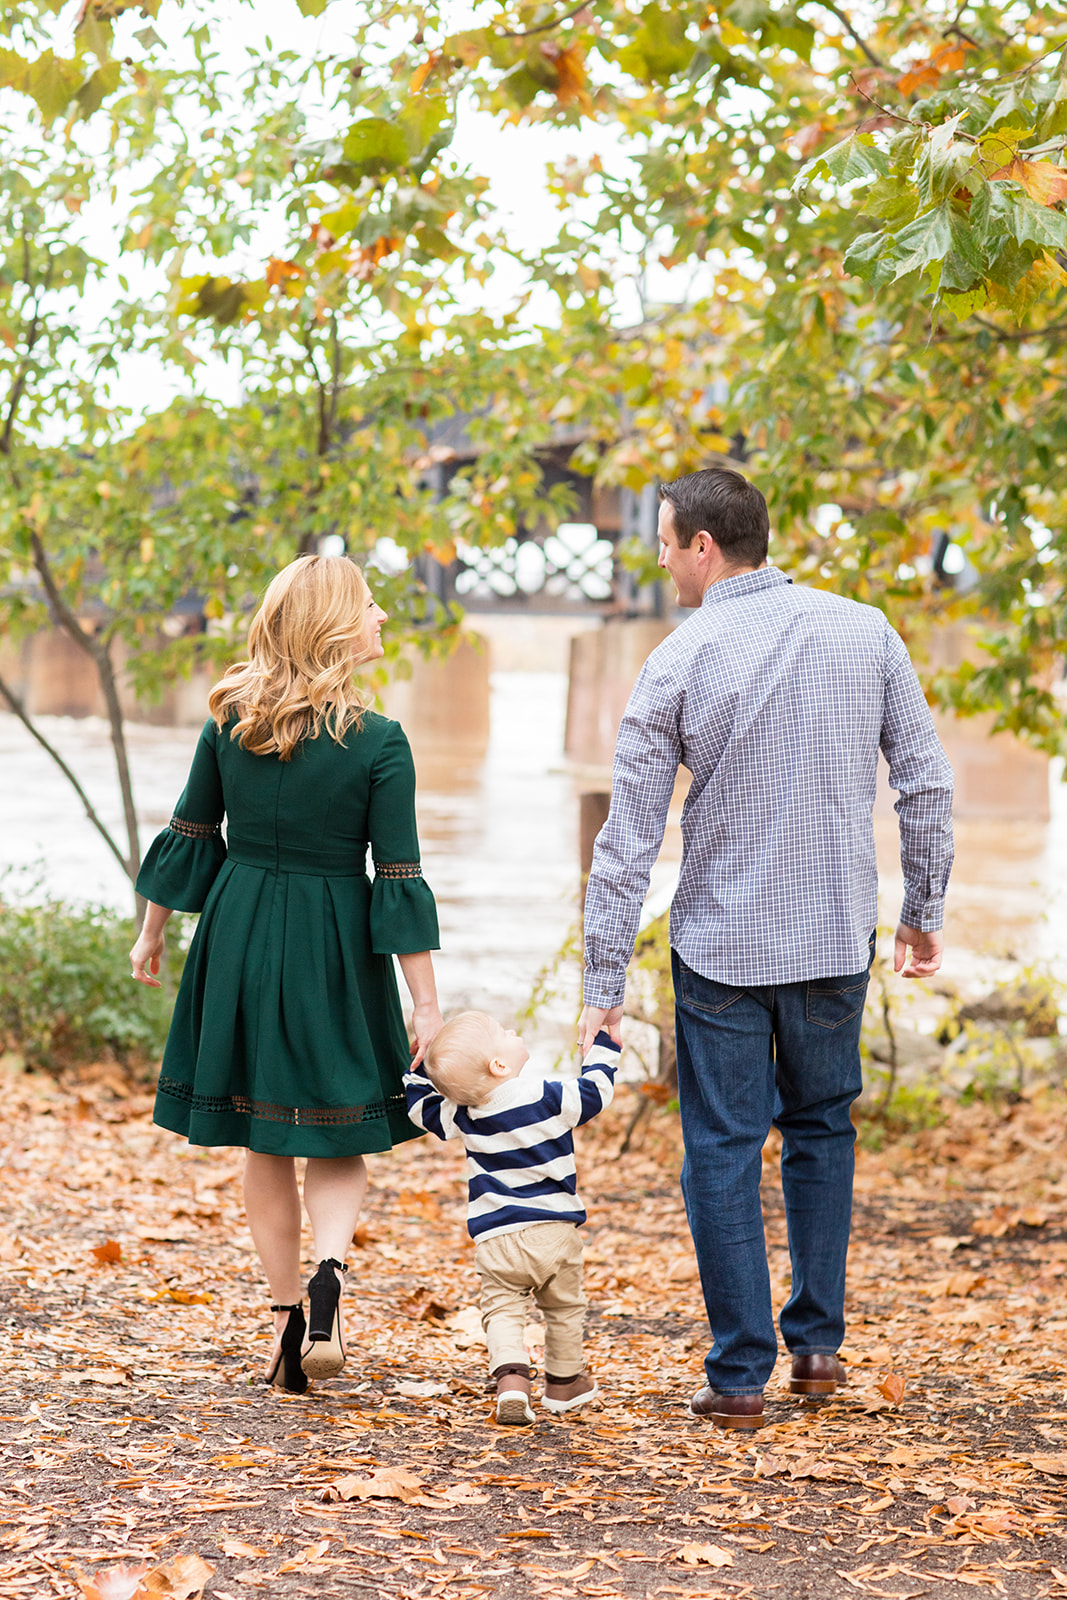 Georges One Year Old Photos at Browns Island - Image Property of www.j-dphoto.com